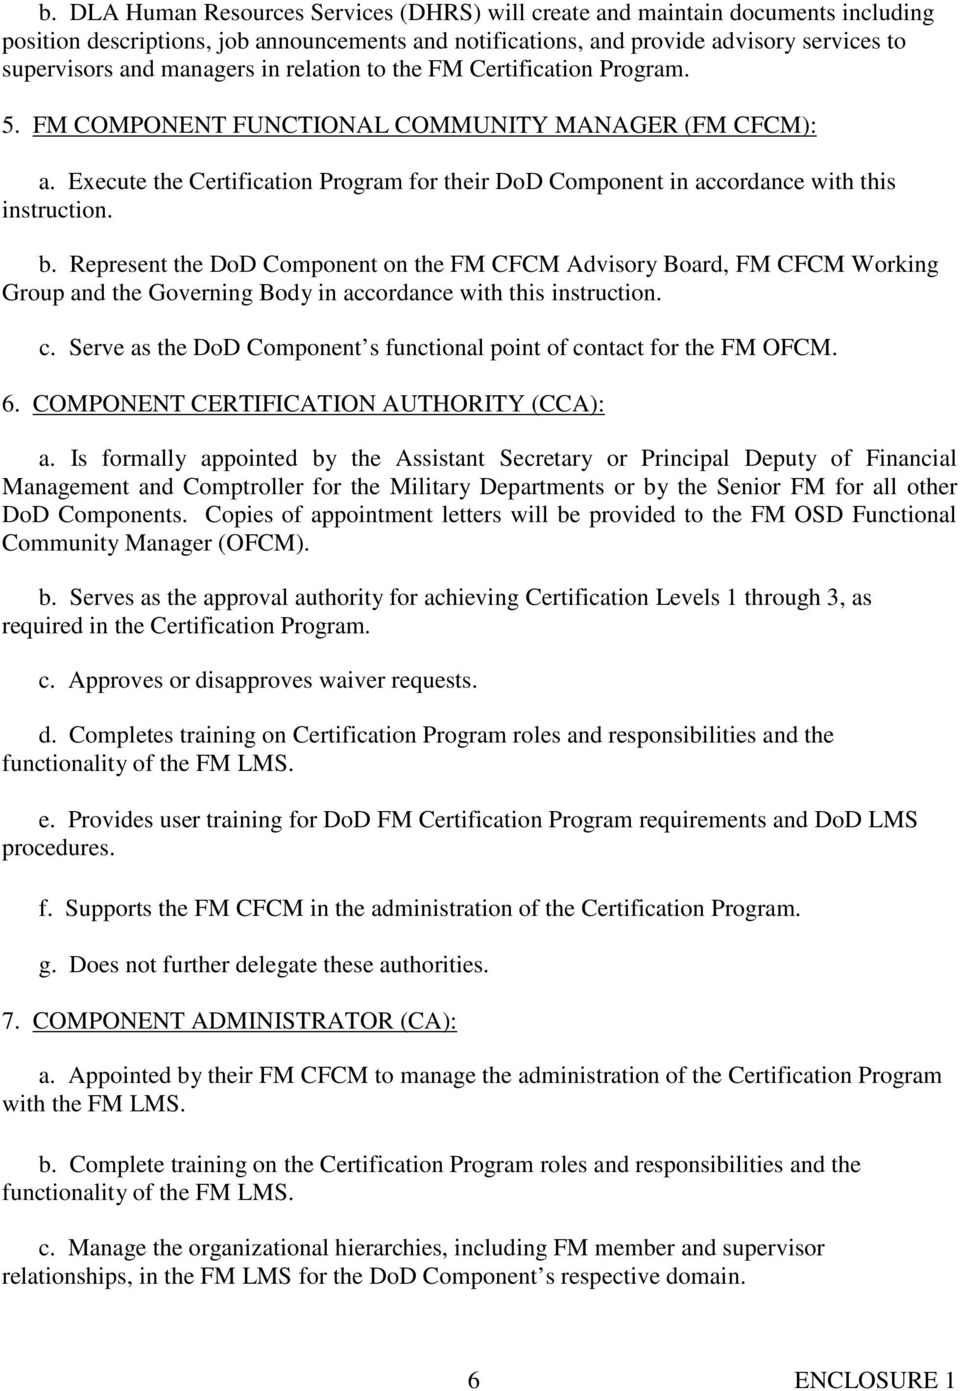 Execute the Certification Program for their DoD Component in accordance with this instruction. b.